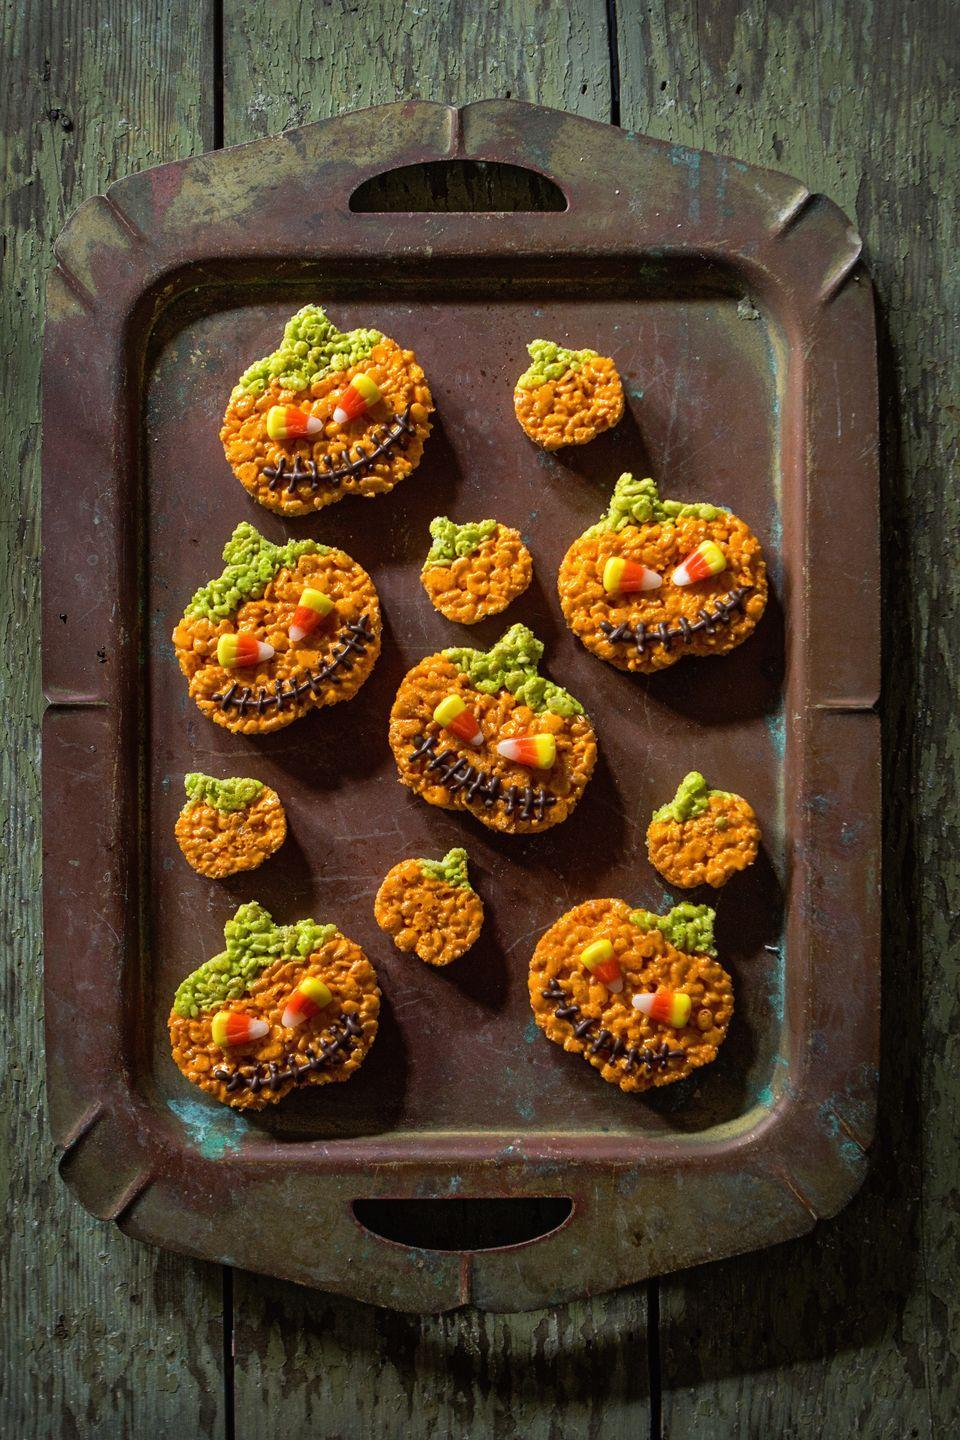 """<p>How's this for your pumpkin carving skills?</p><p>Get the recipe from <a href=""""https://www.delish.com/cooking/recipe-ideas/recipes/a43936/jack-o-lantern-rice-krispies-recipe/"""" rel=""""nofollow noopener"""" target=""""_blank"""" data-ylk=""""slk:Delish"""" class=""""link rapid-noclick-resp"""">Delish</a>.</p>"""